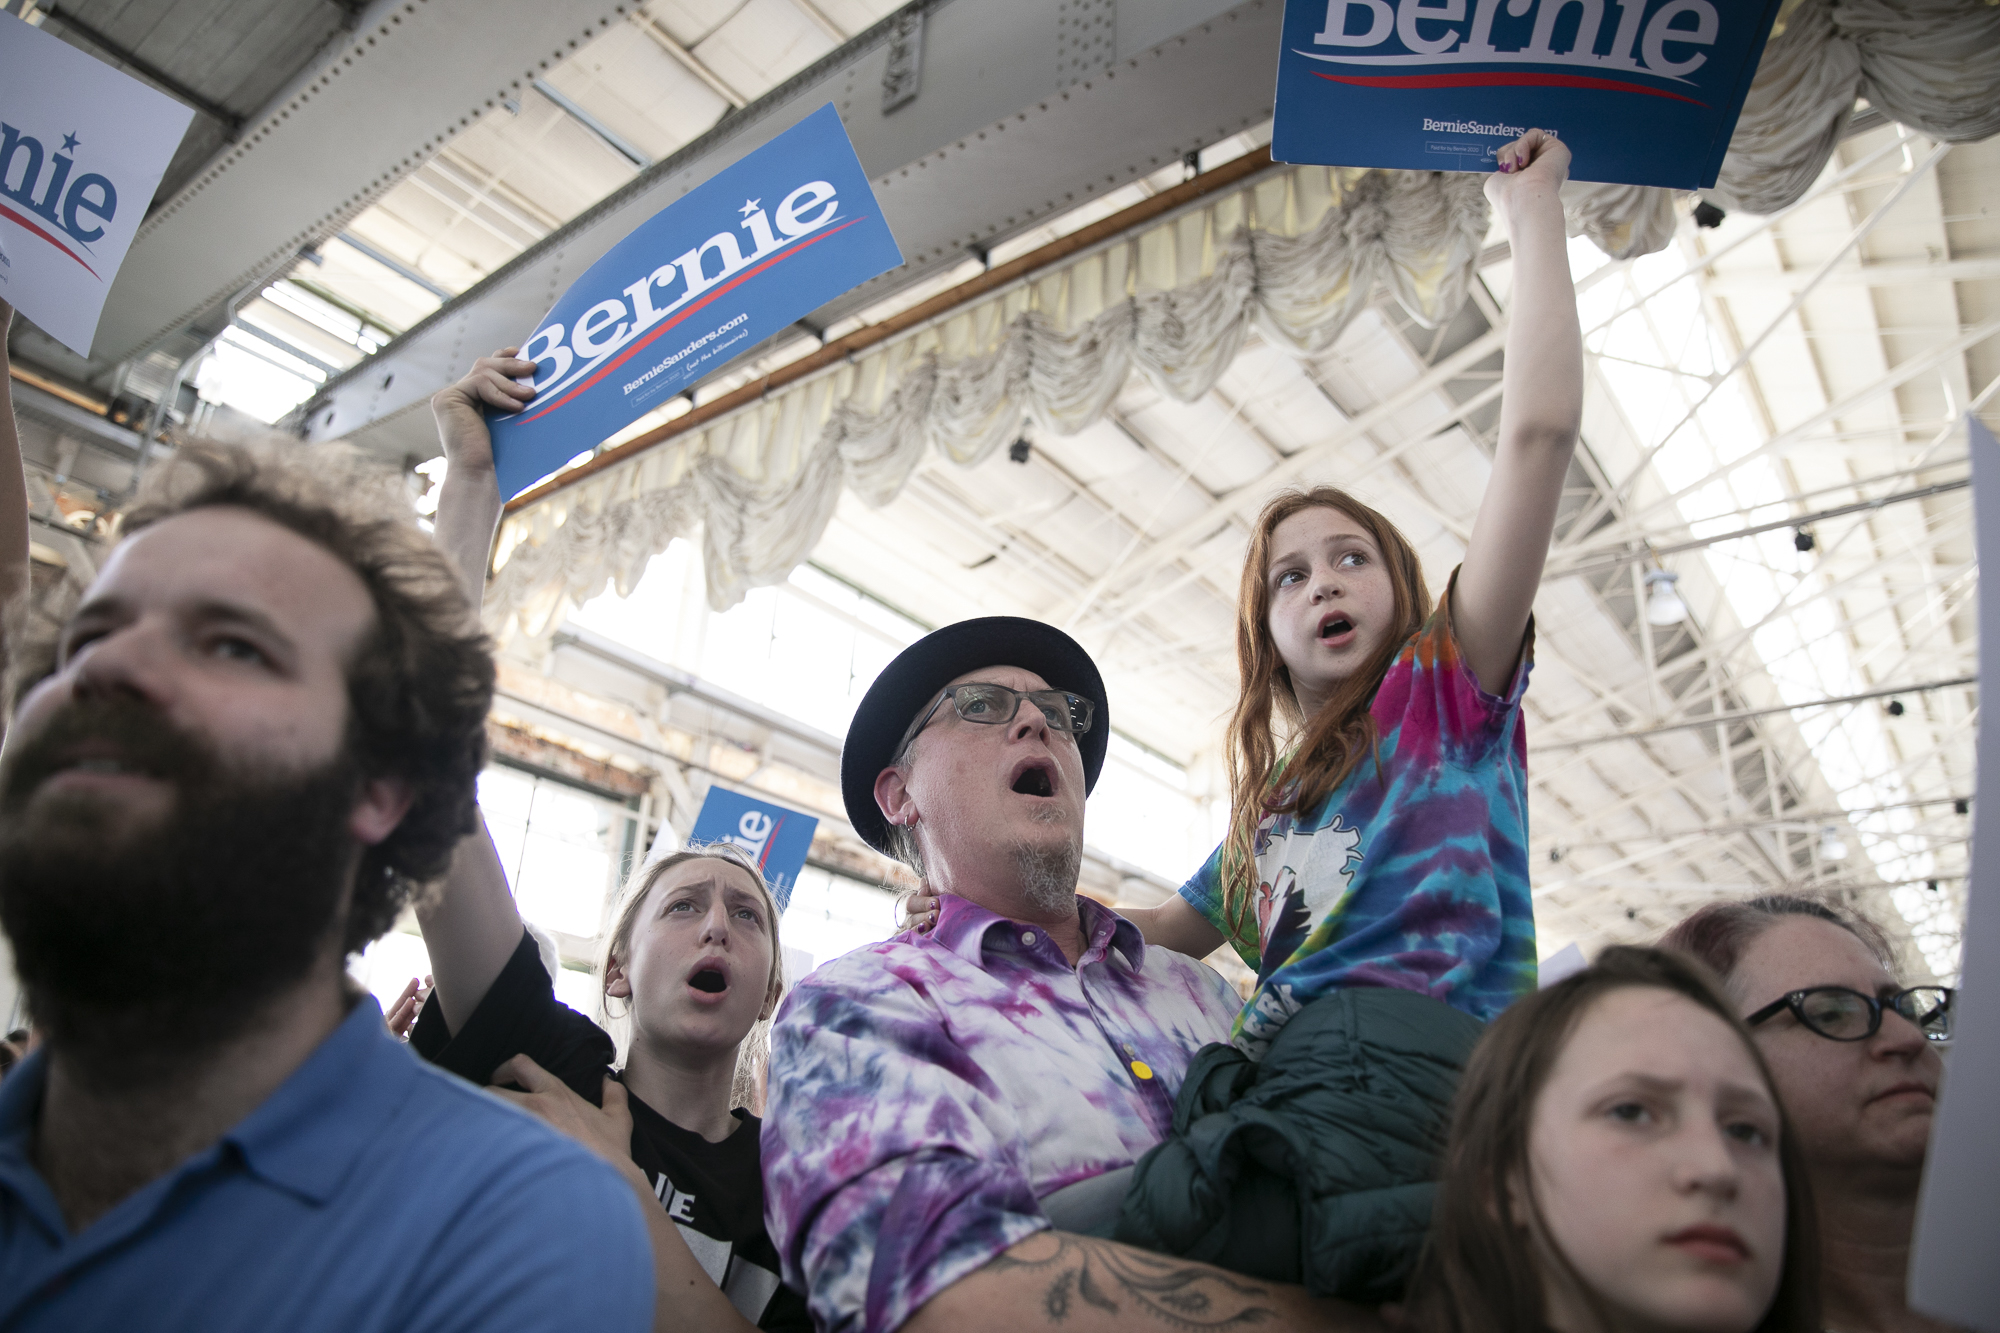 Sebastopol residents Joseph Mastrolia and his children Domino, 13, left and Talulah, 11 cheer during a Bernie Sanders campaign rally in Richmond, CA on February 17, 2020. Photo by Anne Wernikoff for CalMatters